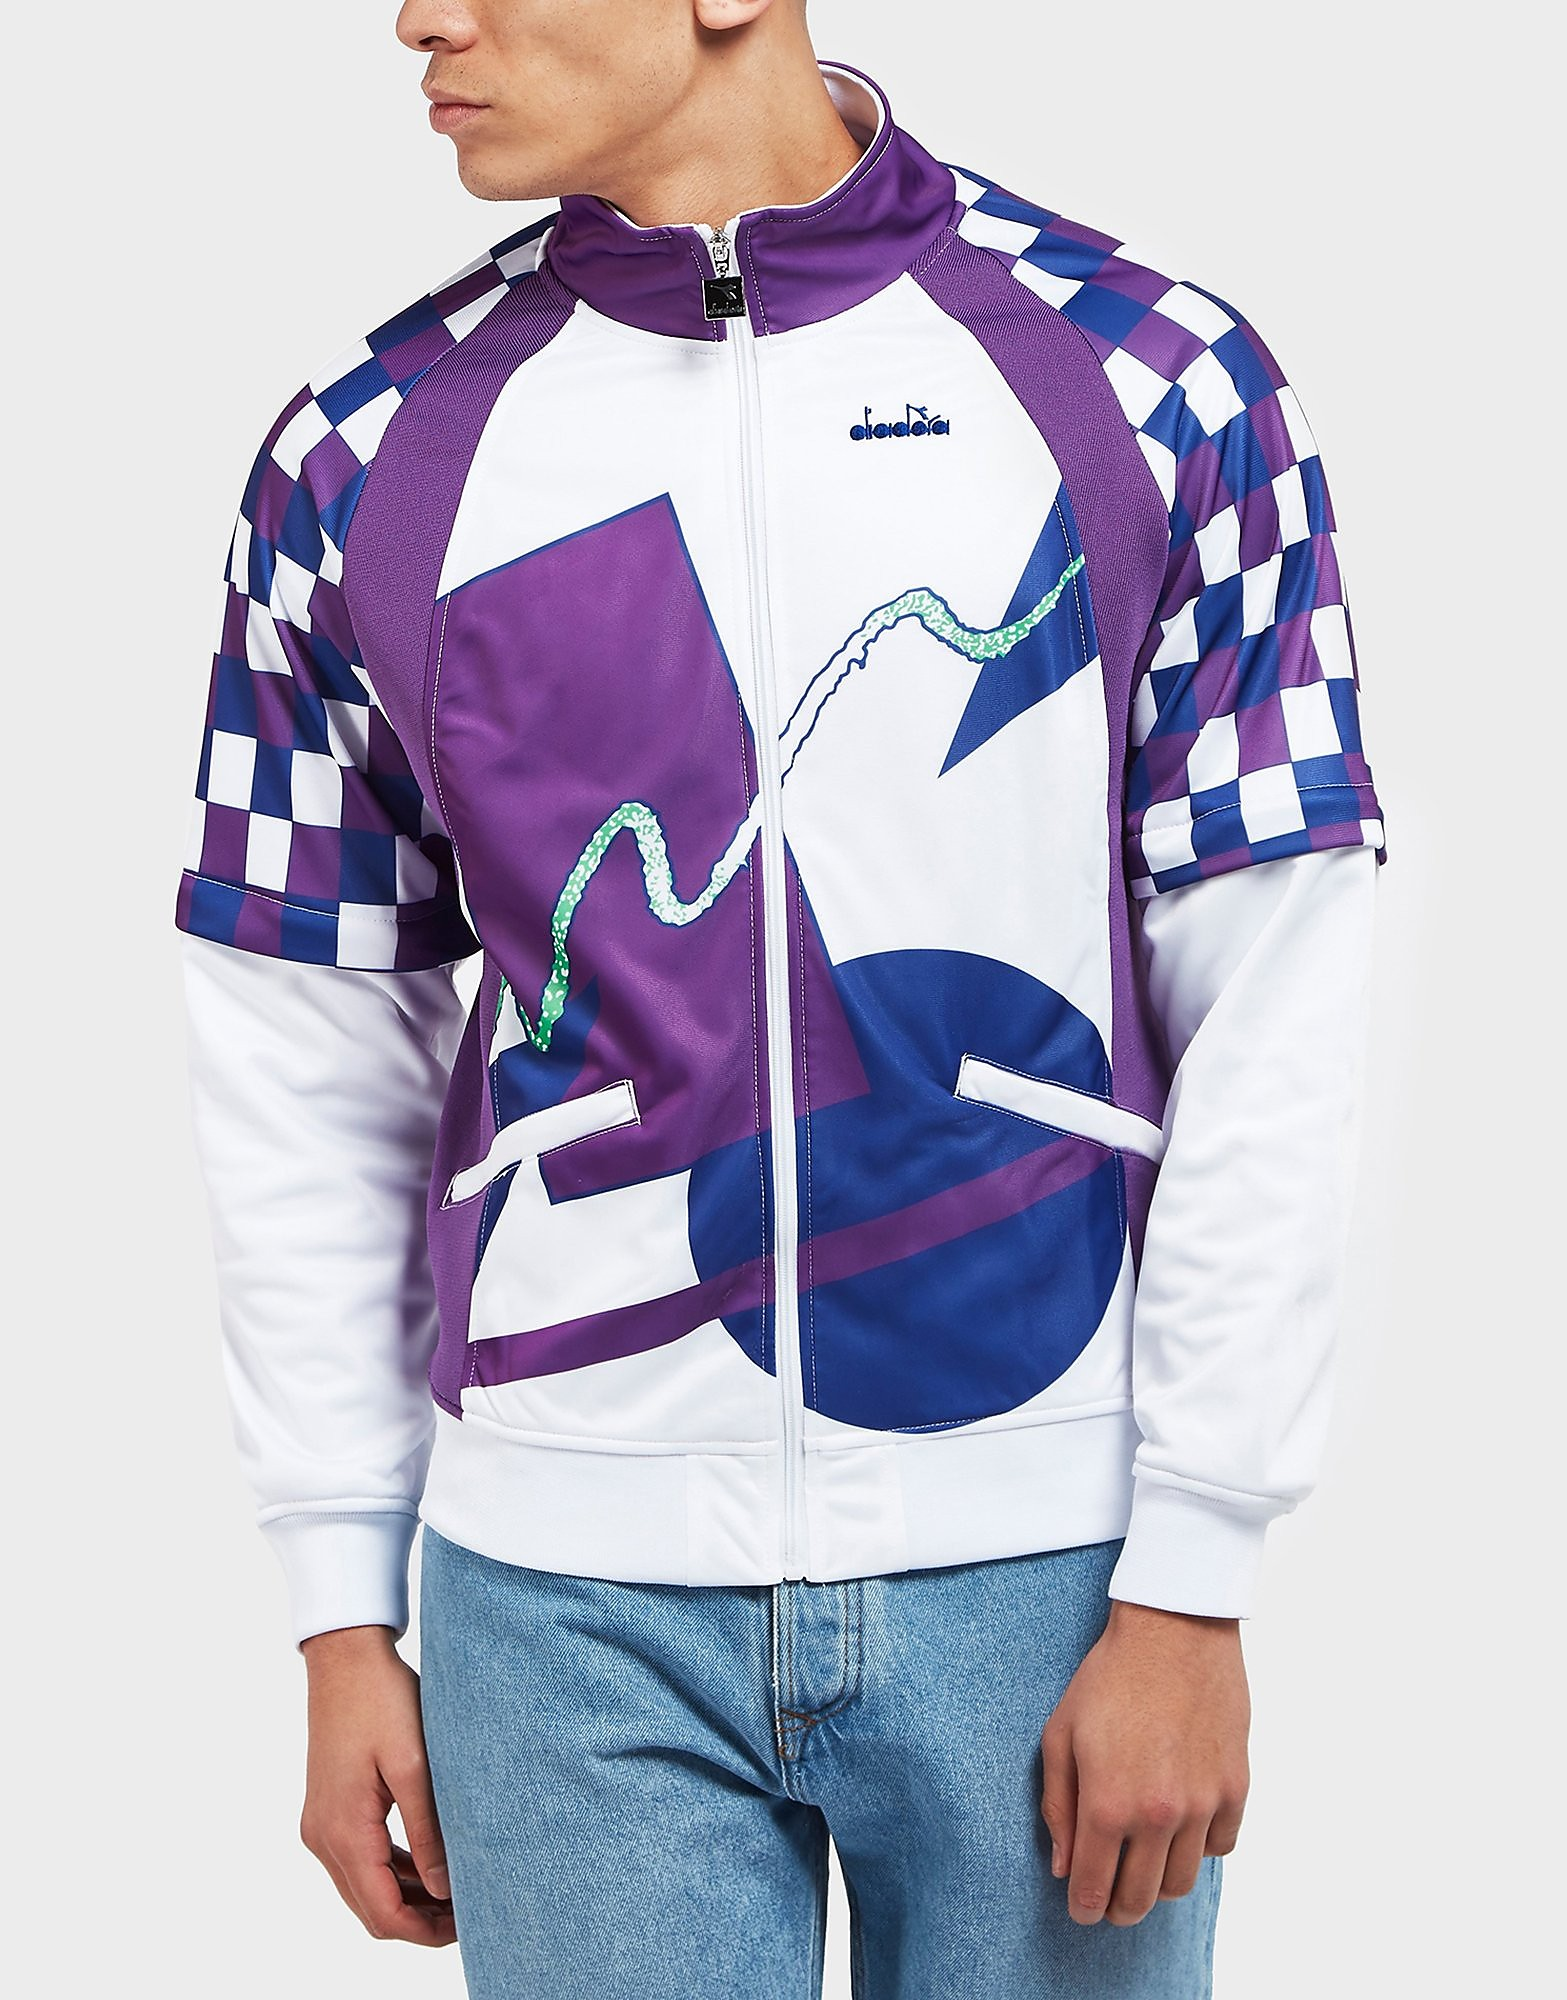 Diadora 90's Full Zip Track Top